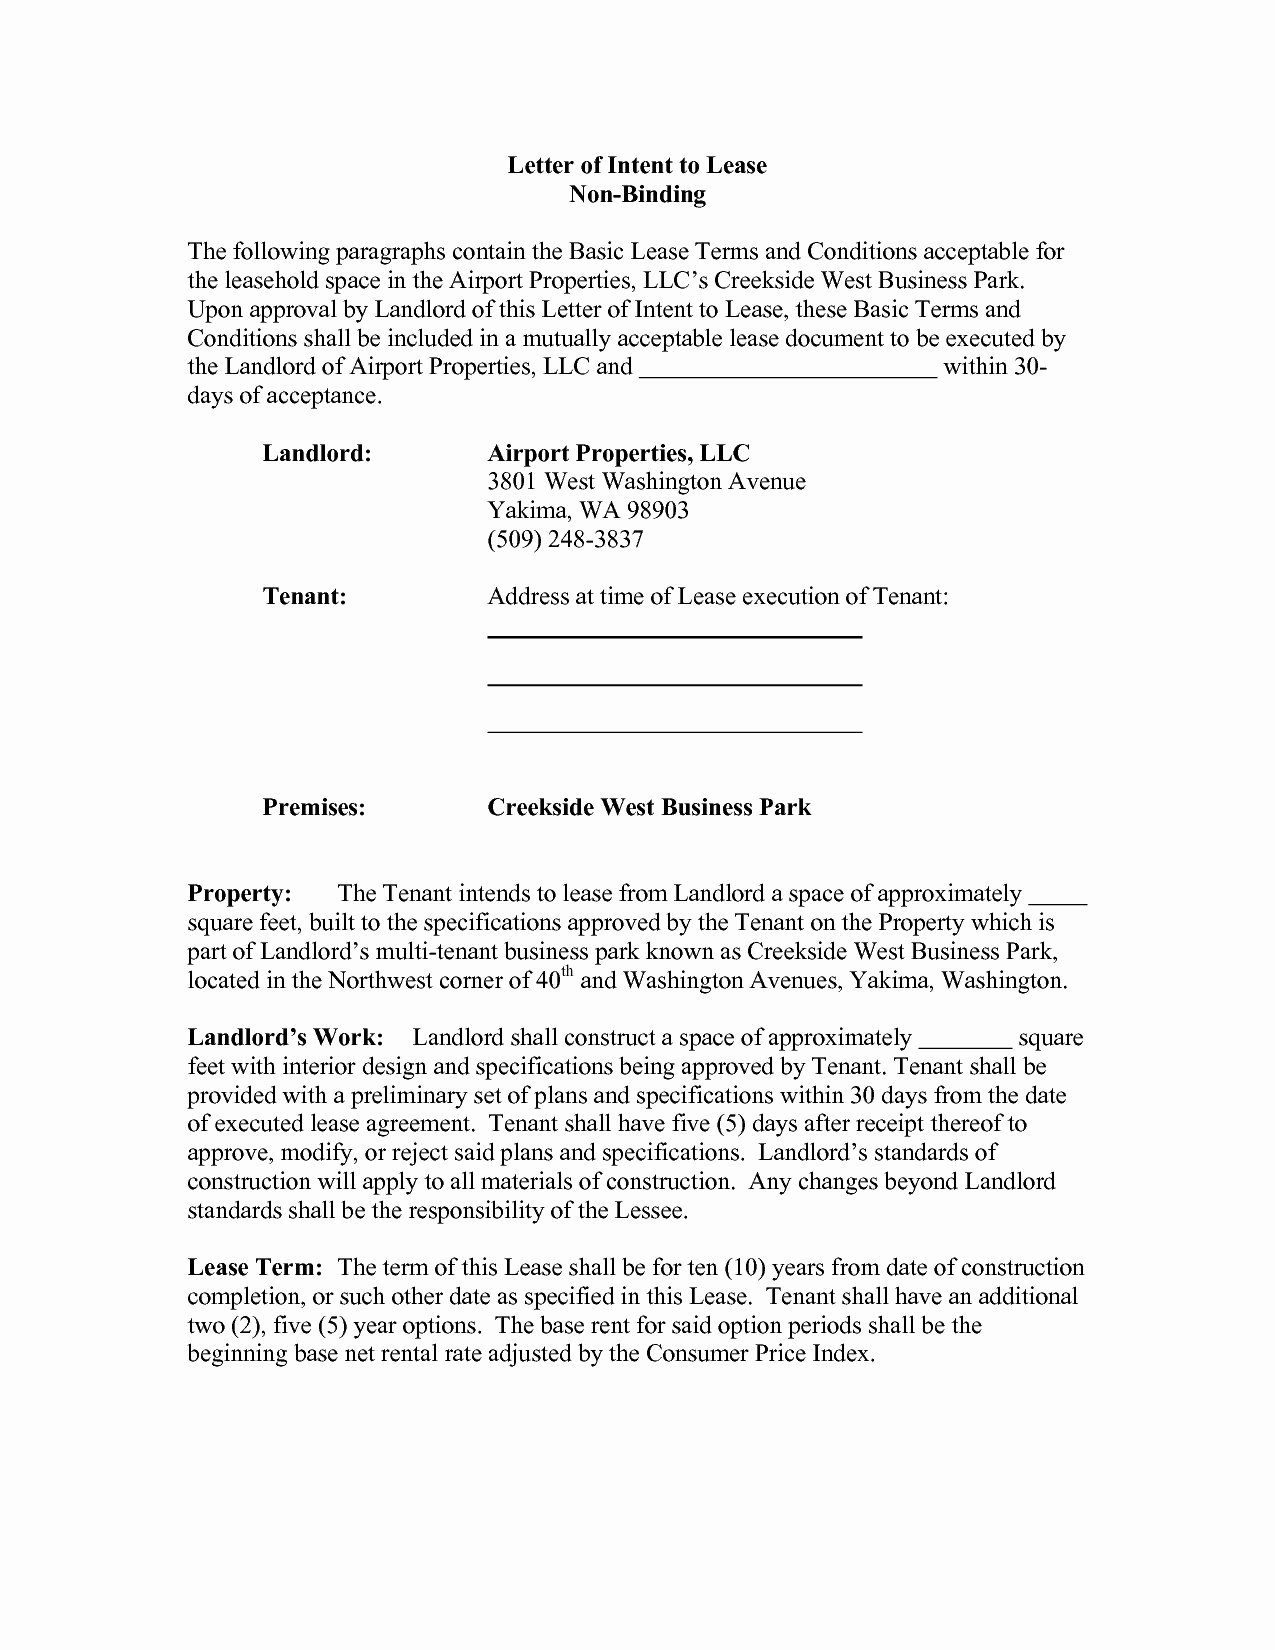 Letter Of Intent to Rent Property Lovely Letter Intent to Lease Mercial Property Template